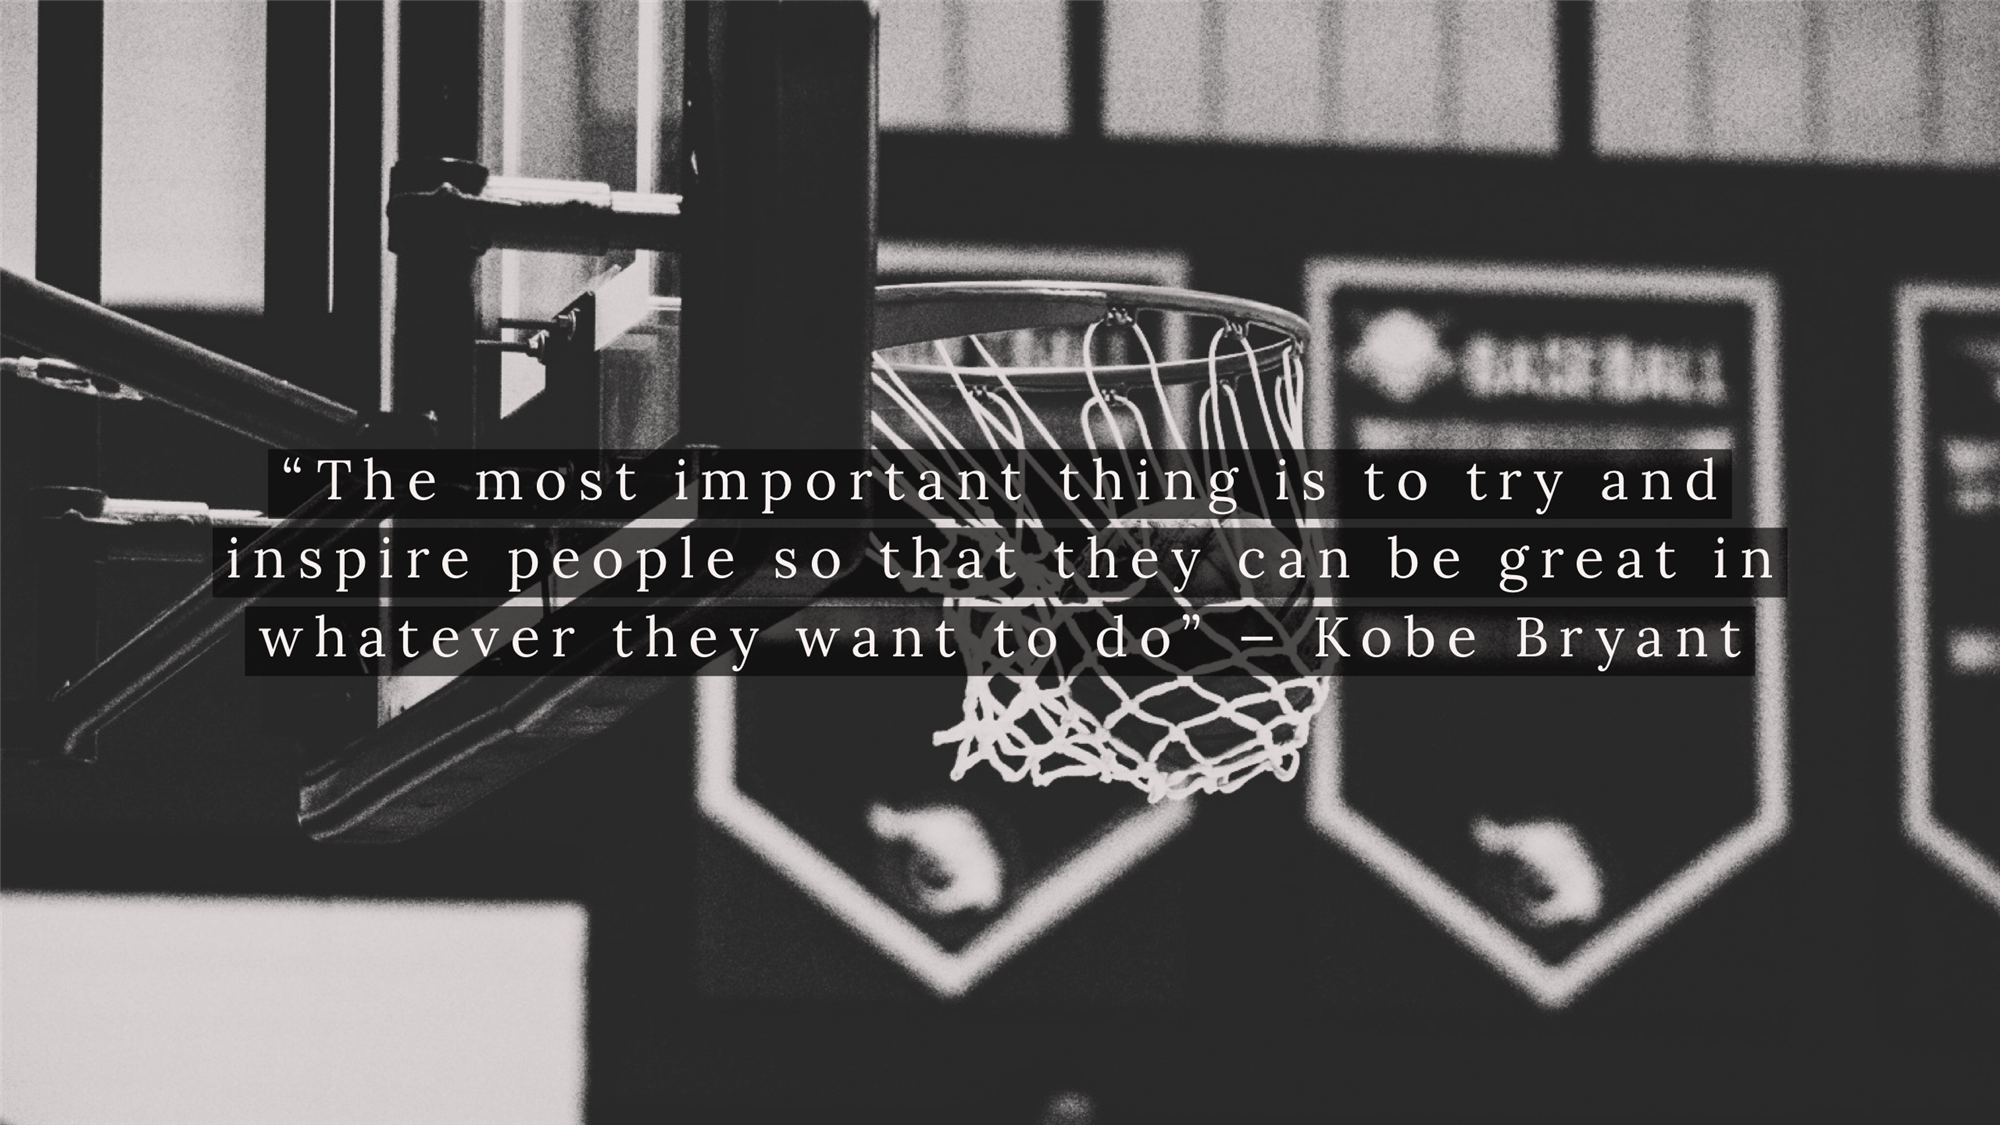 The most important thing is to try and inspire people so that they can be great in whatever they want to do - Kobe Bryant